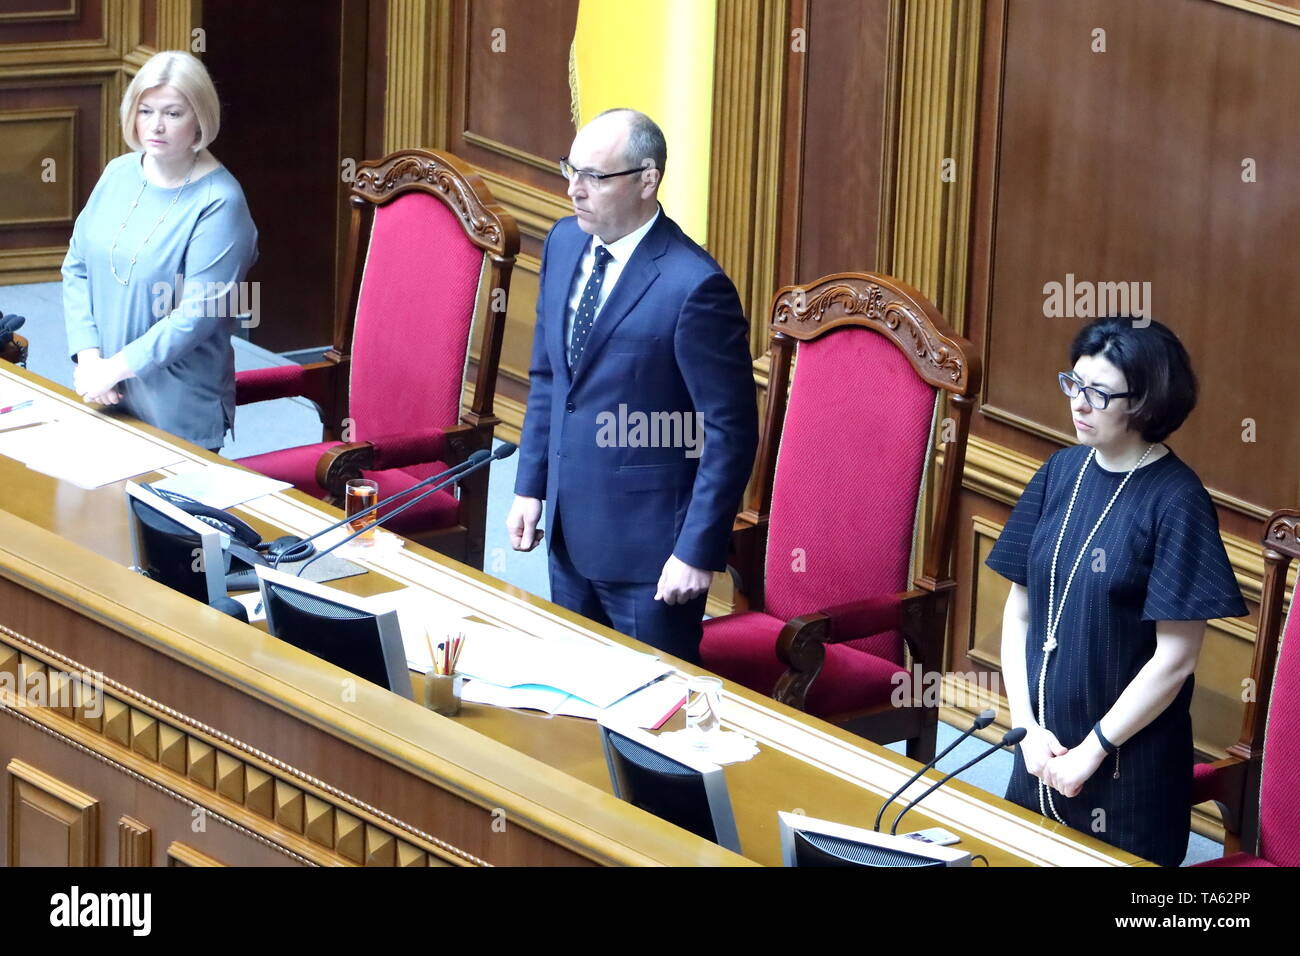 Kiev, Ukraine. 22nd May, 2019. KIEV, UKRAINE - MAY 22, 2019: Verkhovna Rada Chairman Andreiy Parubiy (C) holds a special meeting initiated by Ukraine's President Volodymyr Zelensky; the two draft laws brought forward by Zelensky to reform the electoral system have failed to gain enough votes to be introduced to the Ukrainian parliament. Pyotr Sivkov/TASS Credit: ITAR-TASS News Agency/Alamy Live News - Stock Image